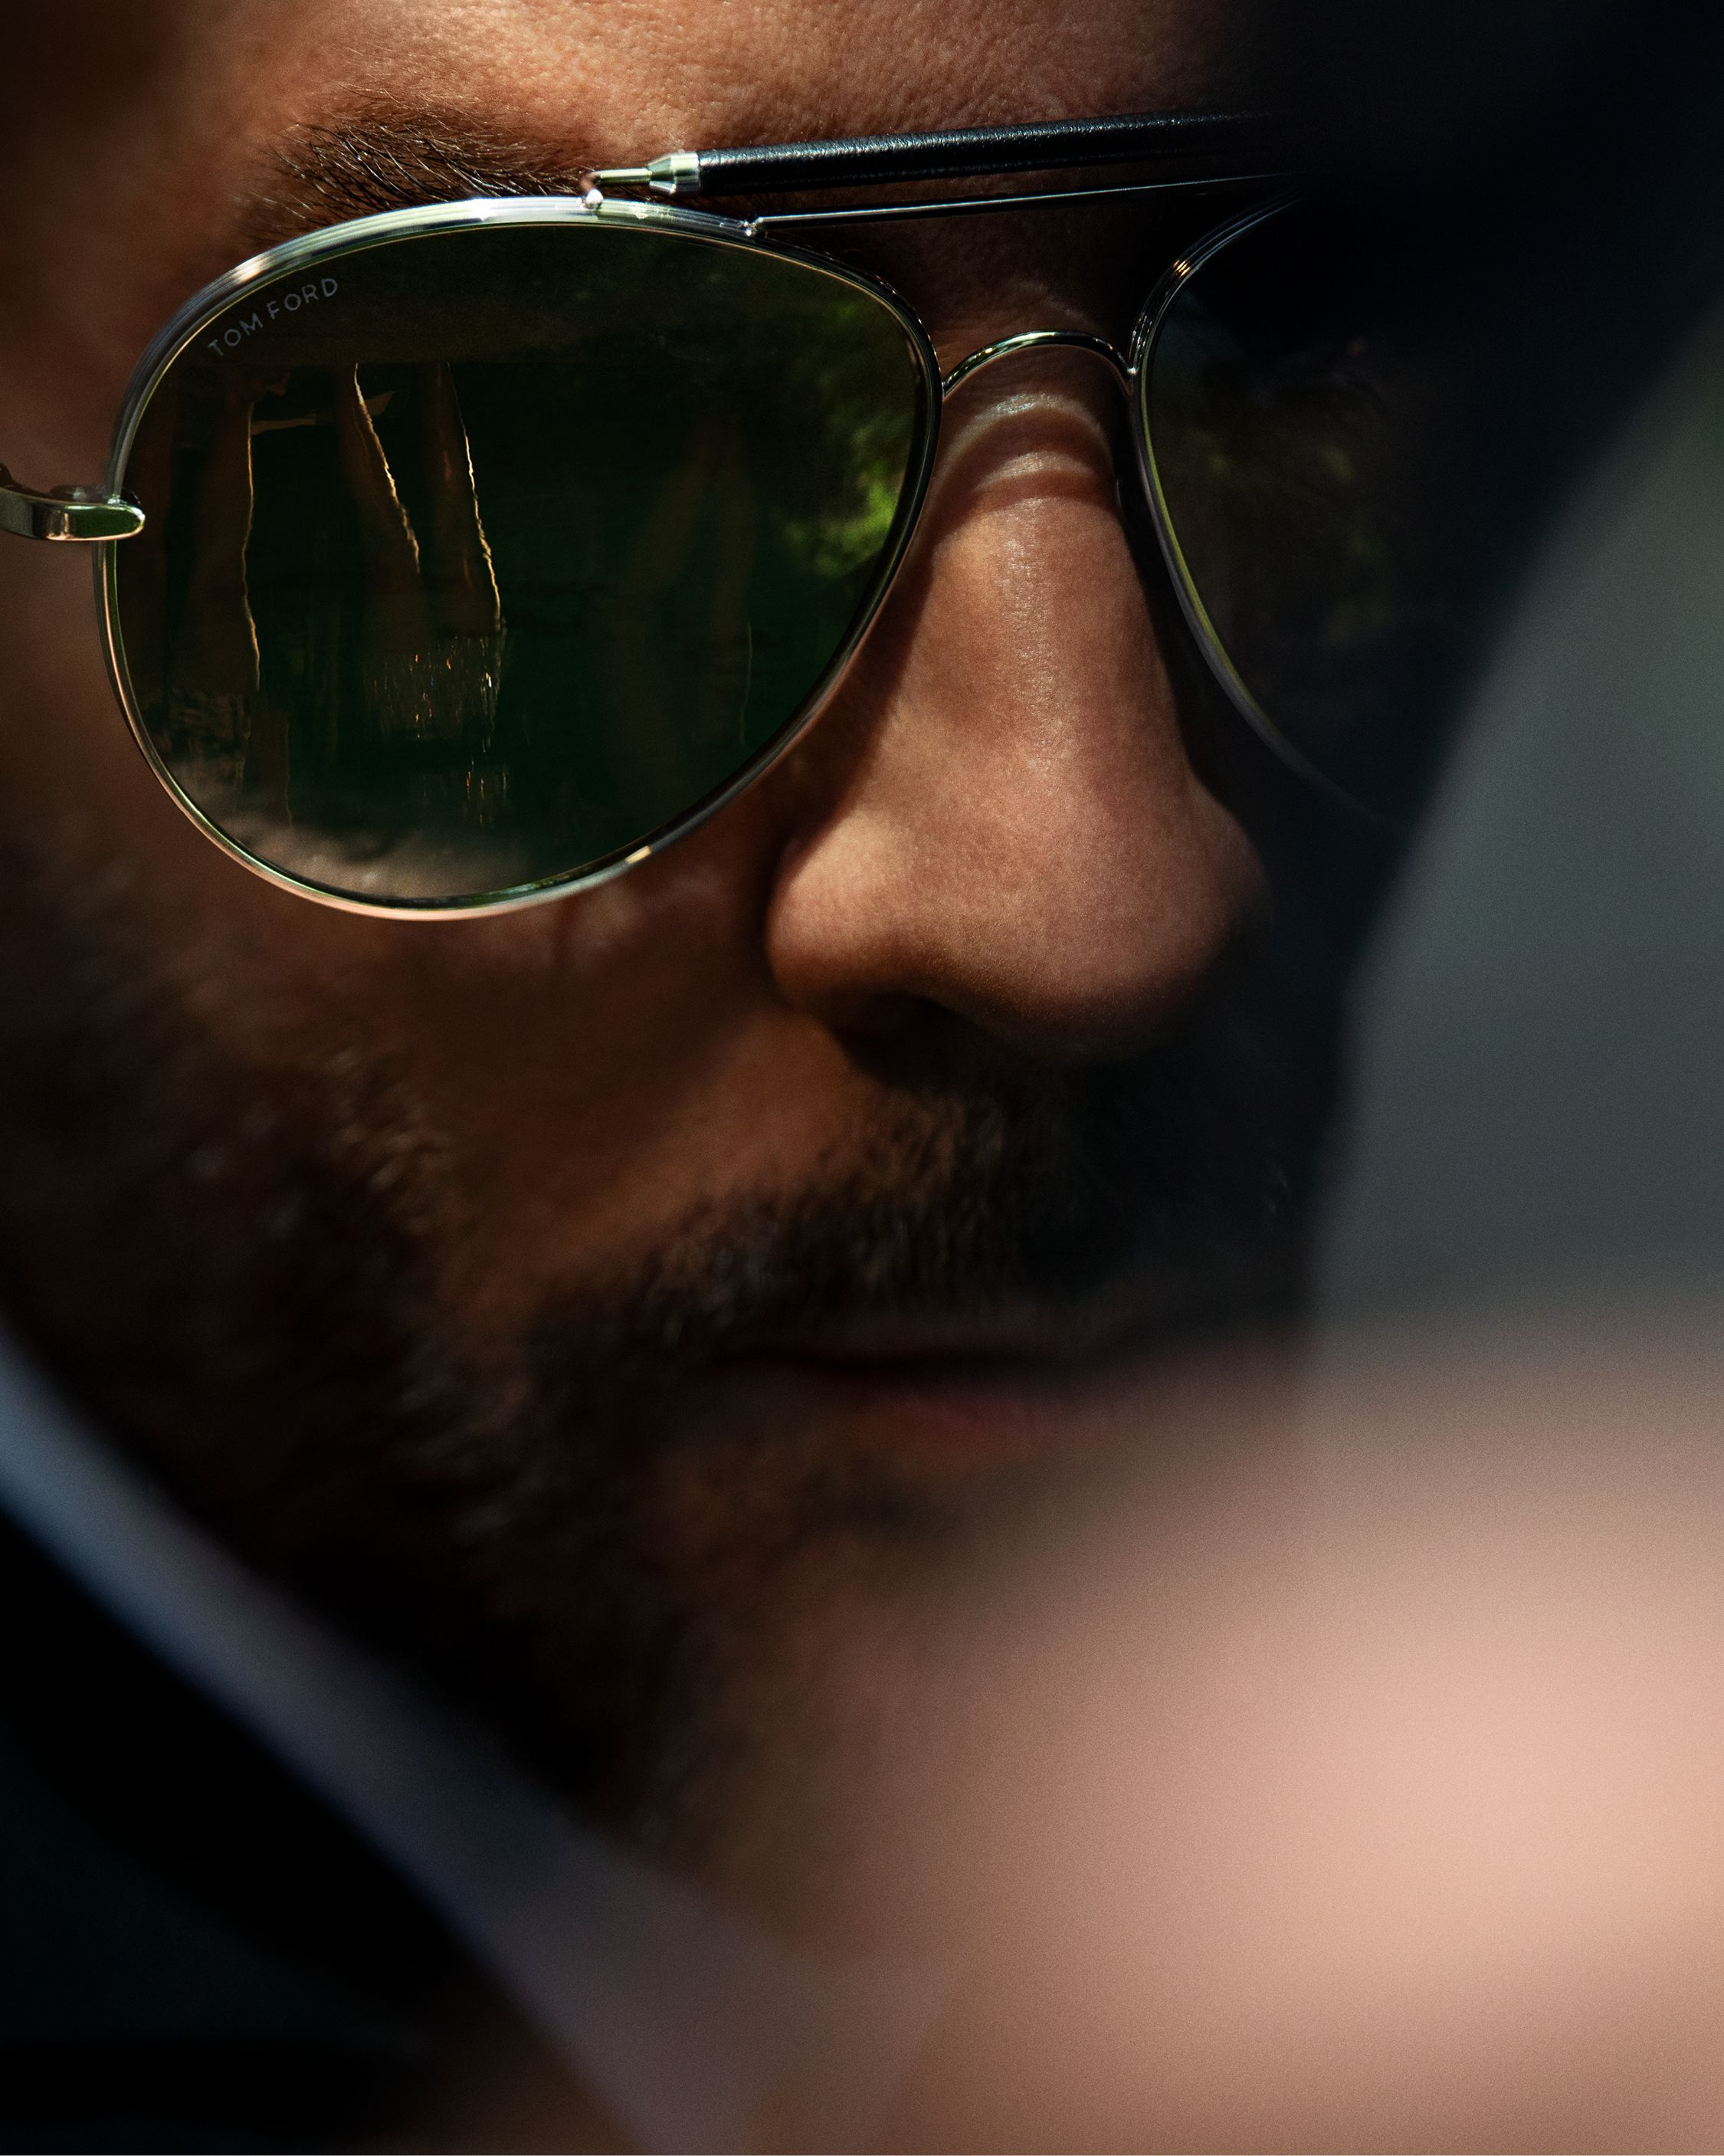 61a93f7efa6e Discover the exclusive TOM FORD Private Collection featuring 3 new styles  of Sunglasses and Optical Frames.  TOMFORD  TFPRIVATECOLLECTION